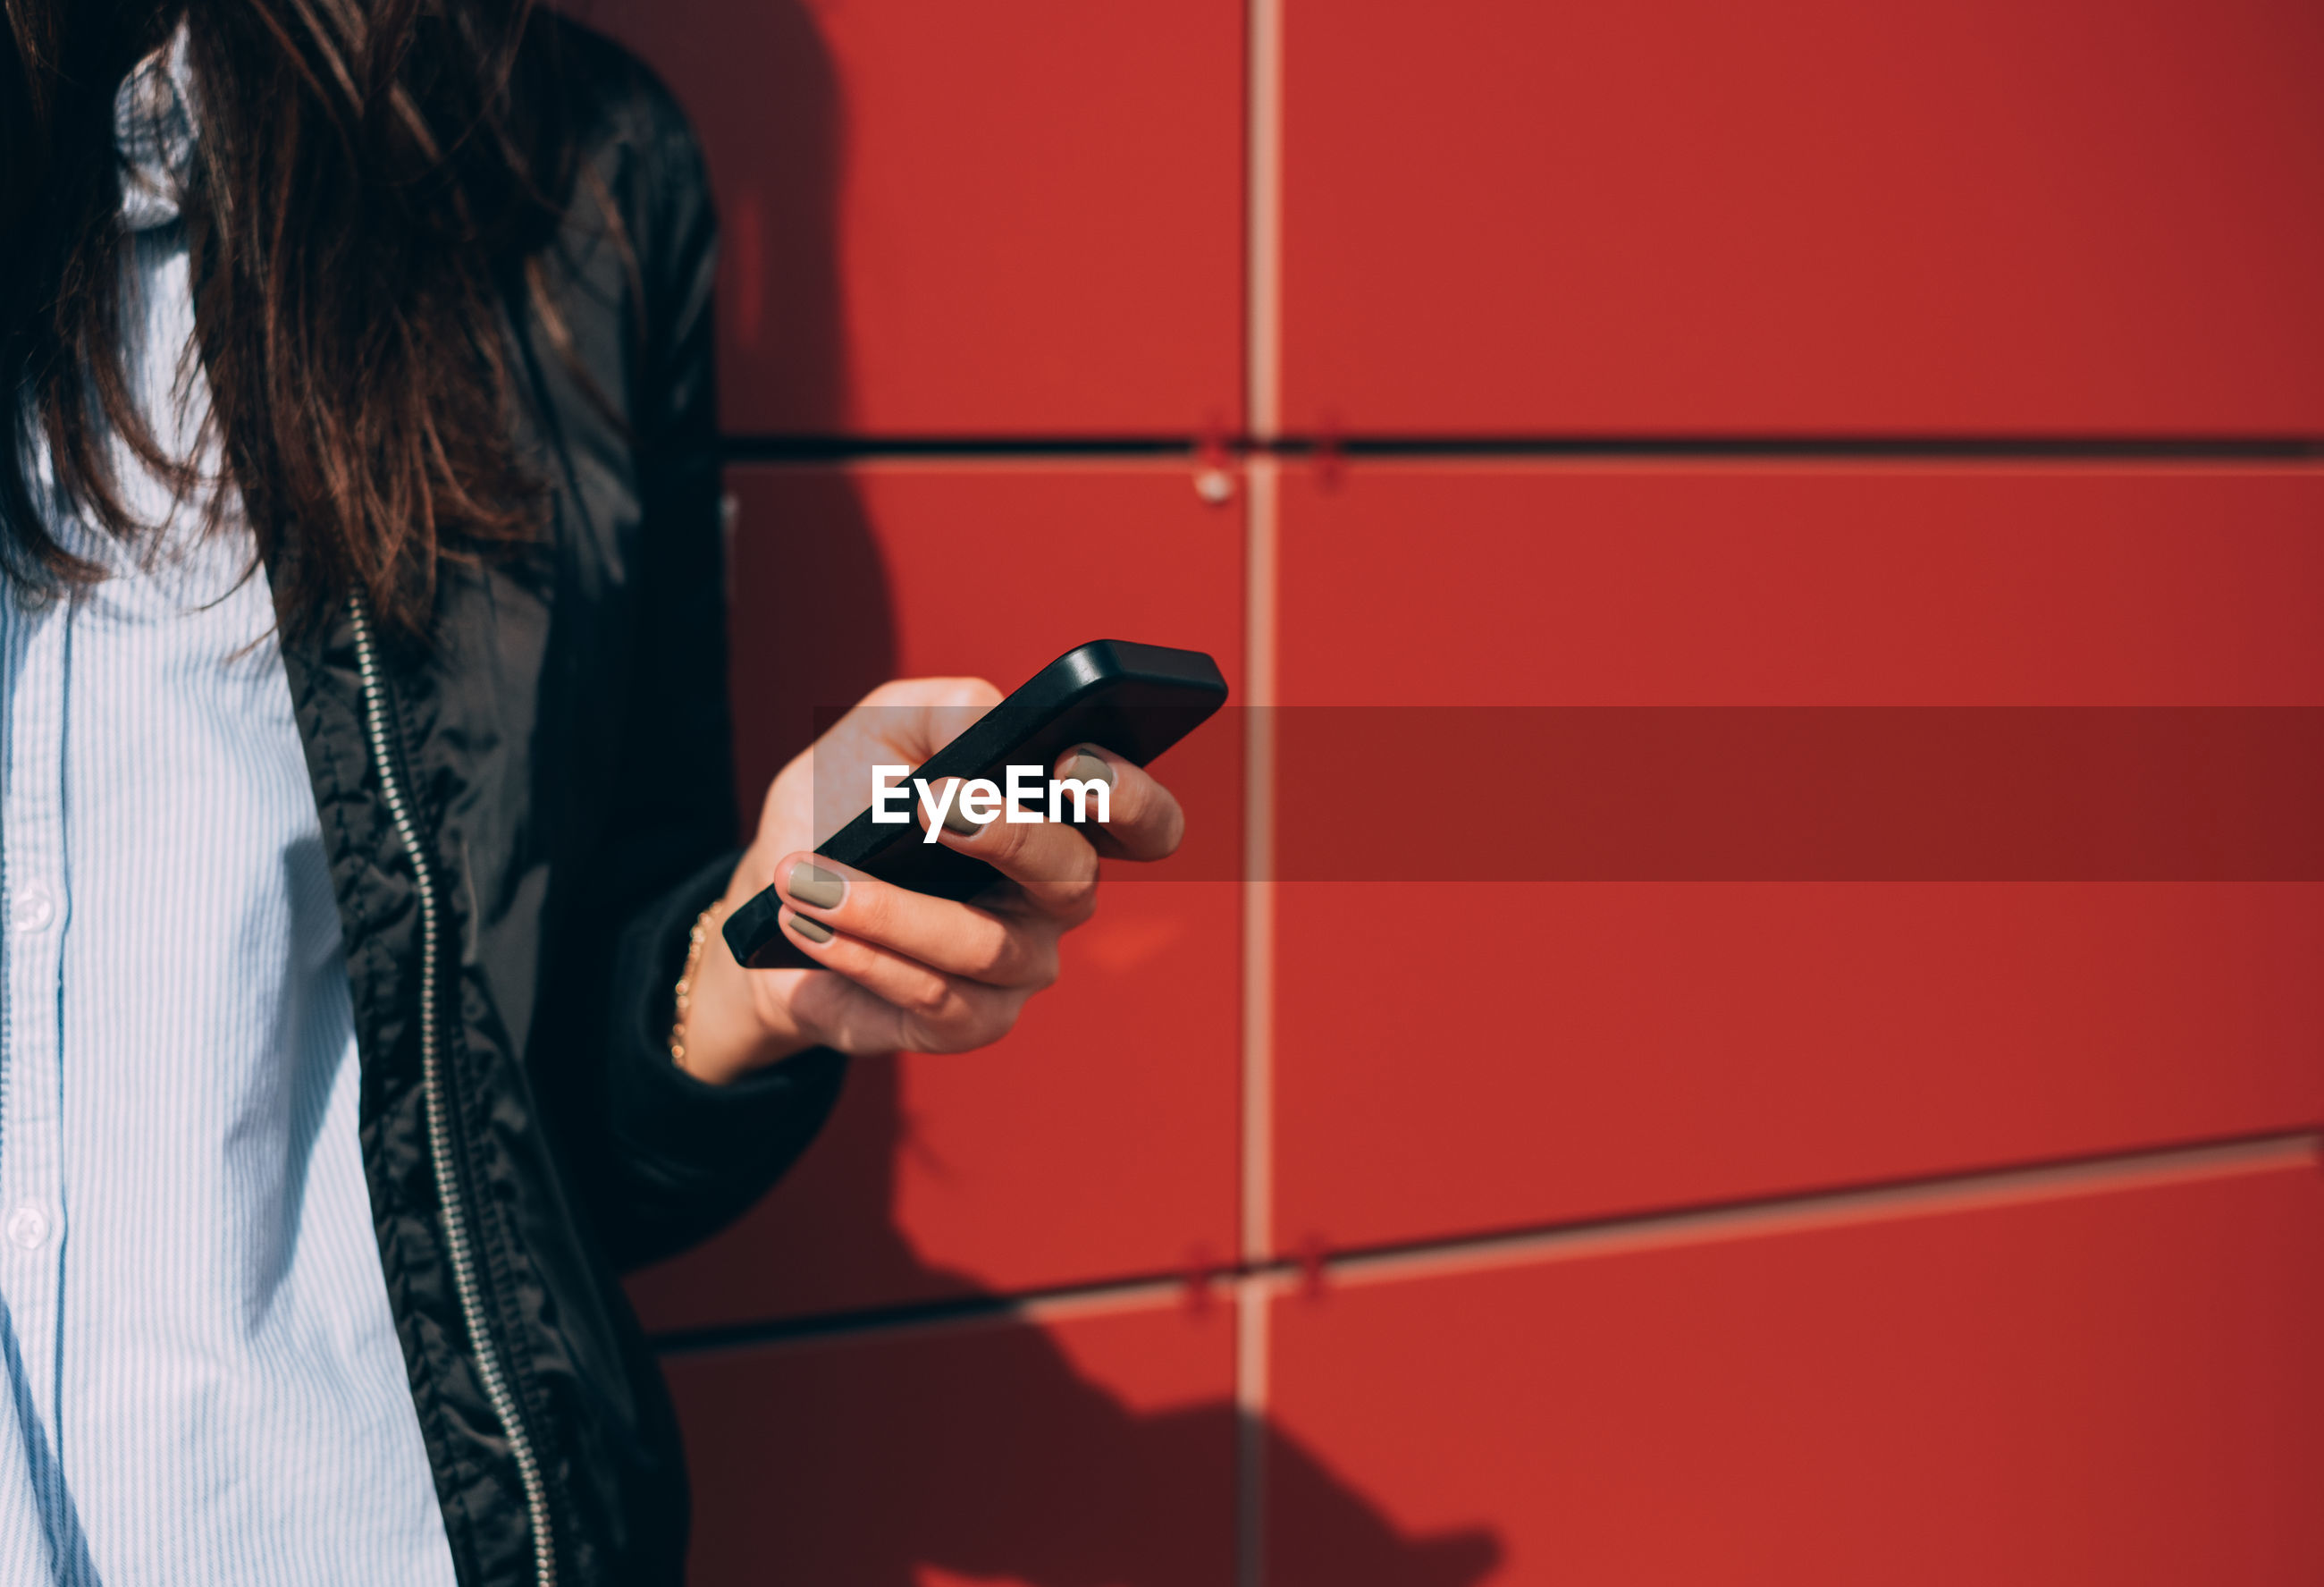 Midsection of woman using mobile phone against red wall